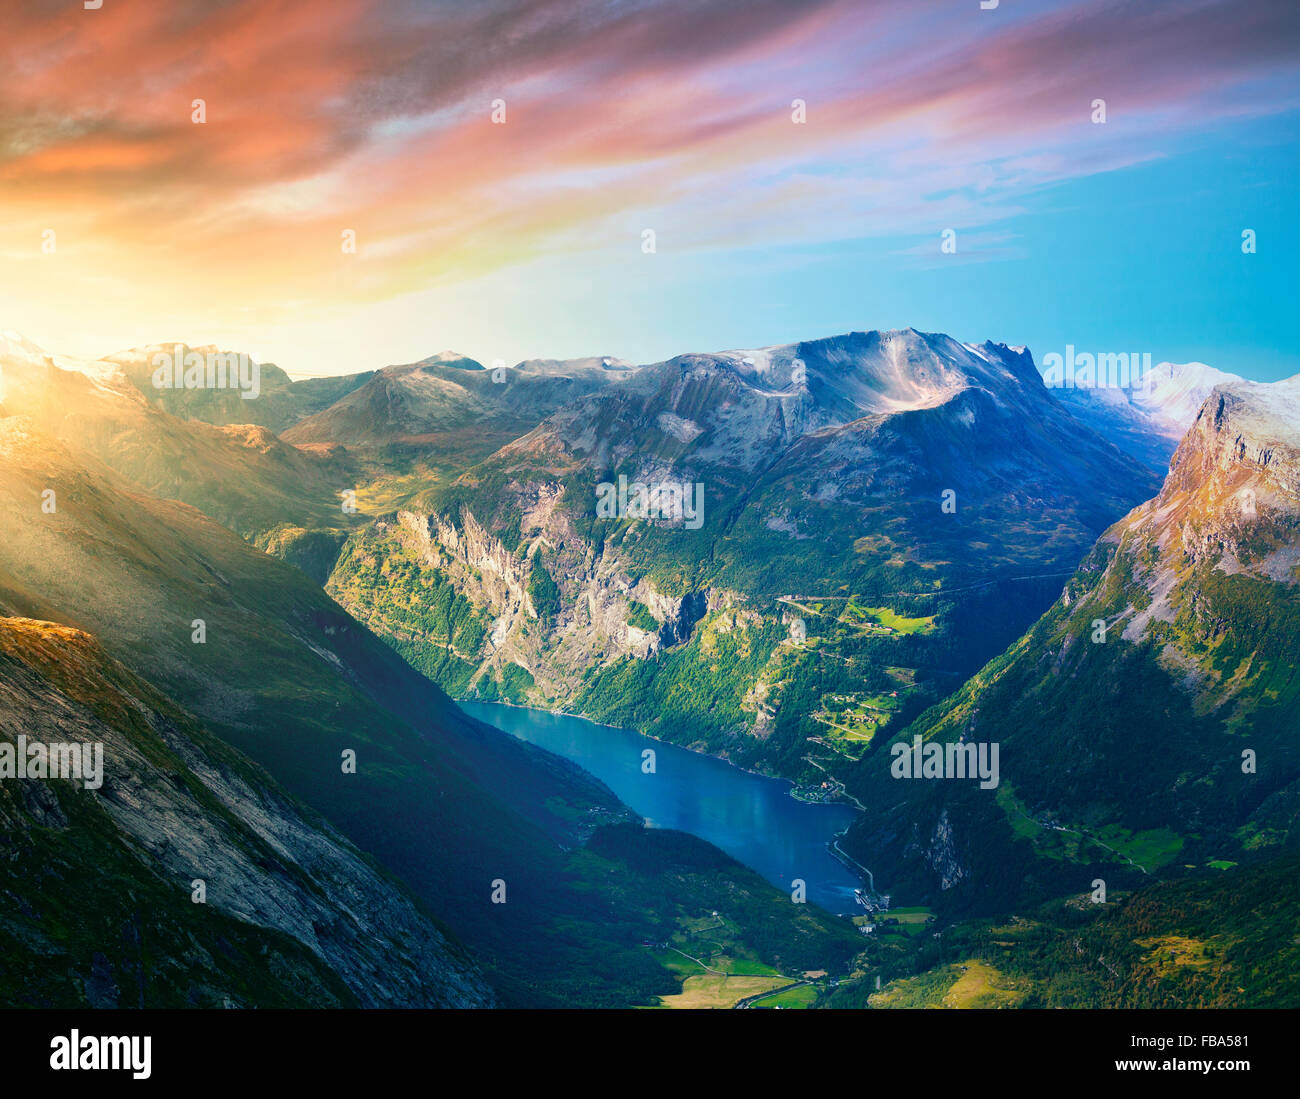 Norway, More og Romsdal, Sunnmore, Geirangerfjord, Narrow patch of sea at bottom of fjord - Stock Image